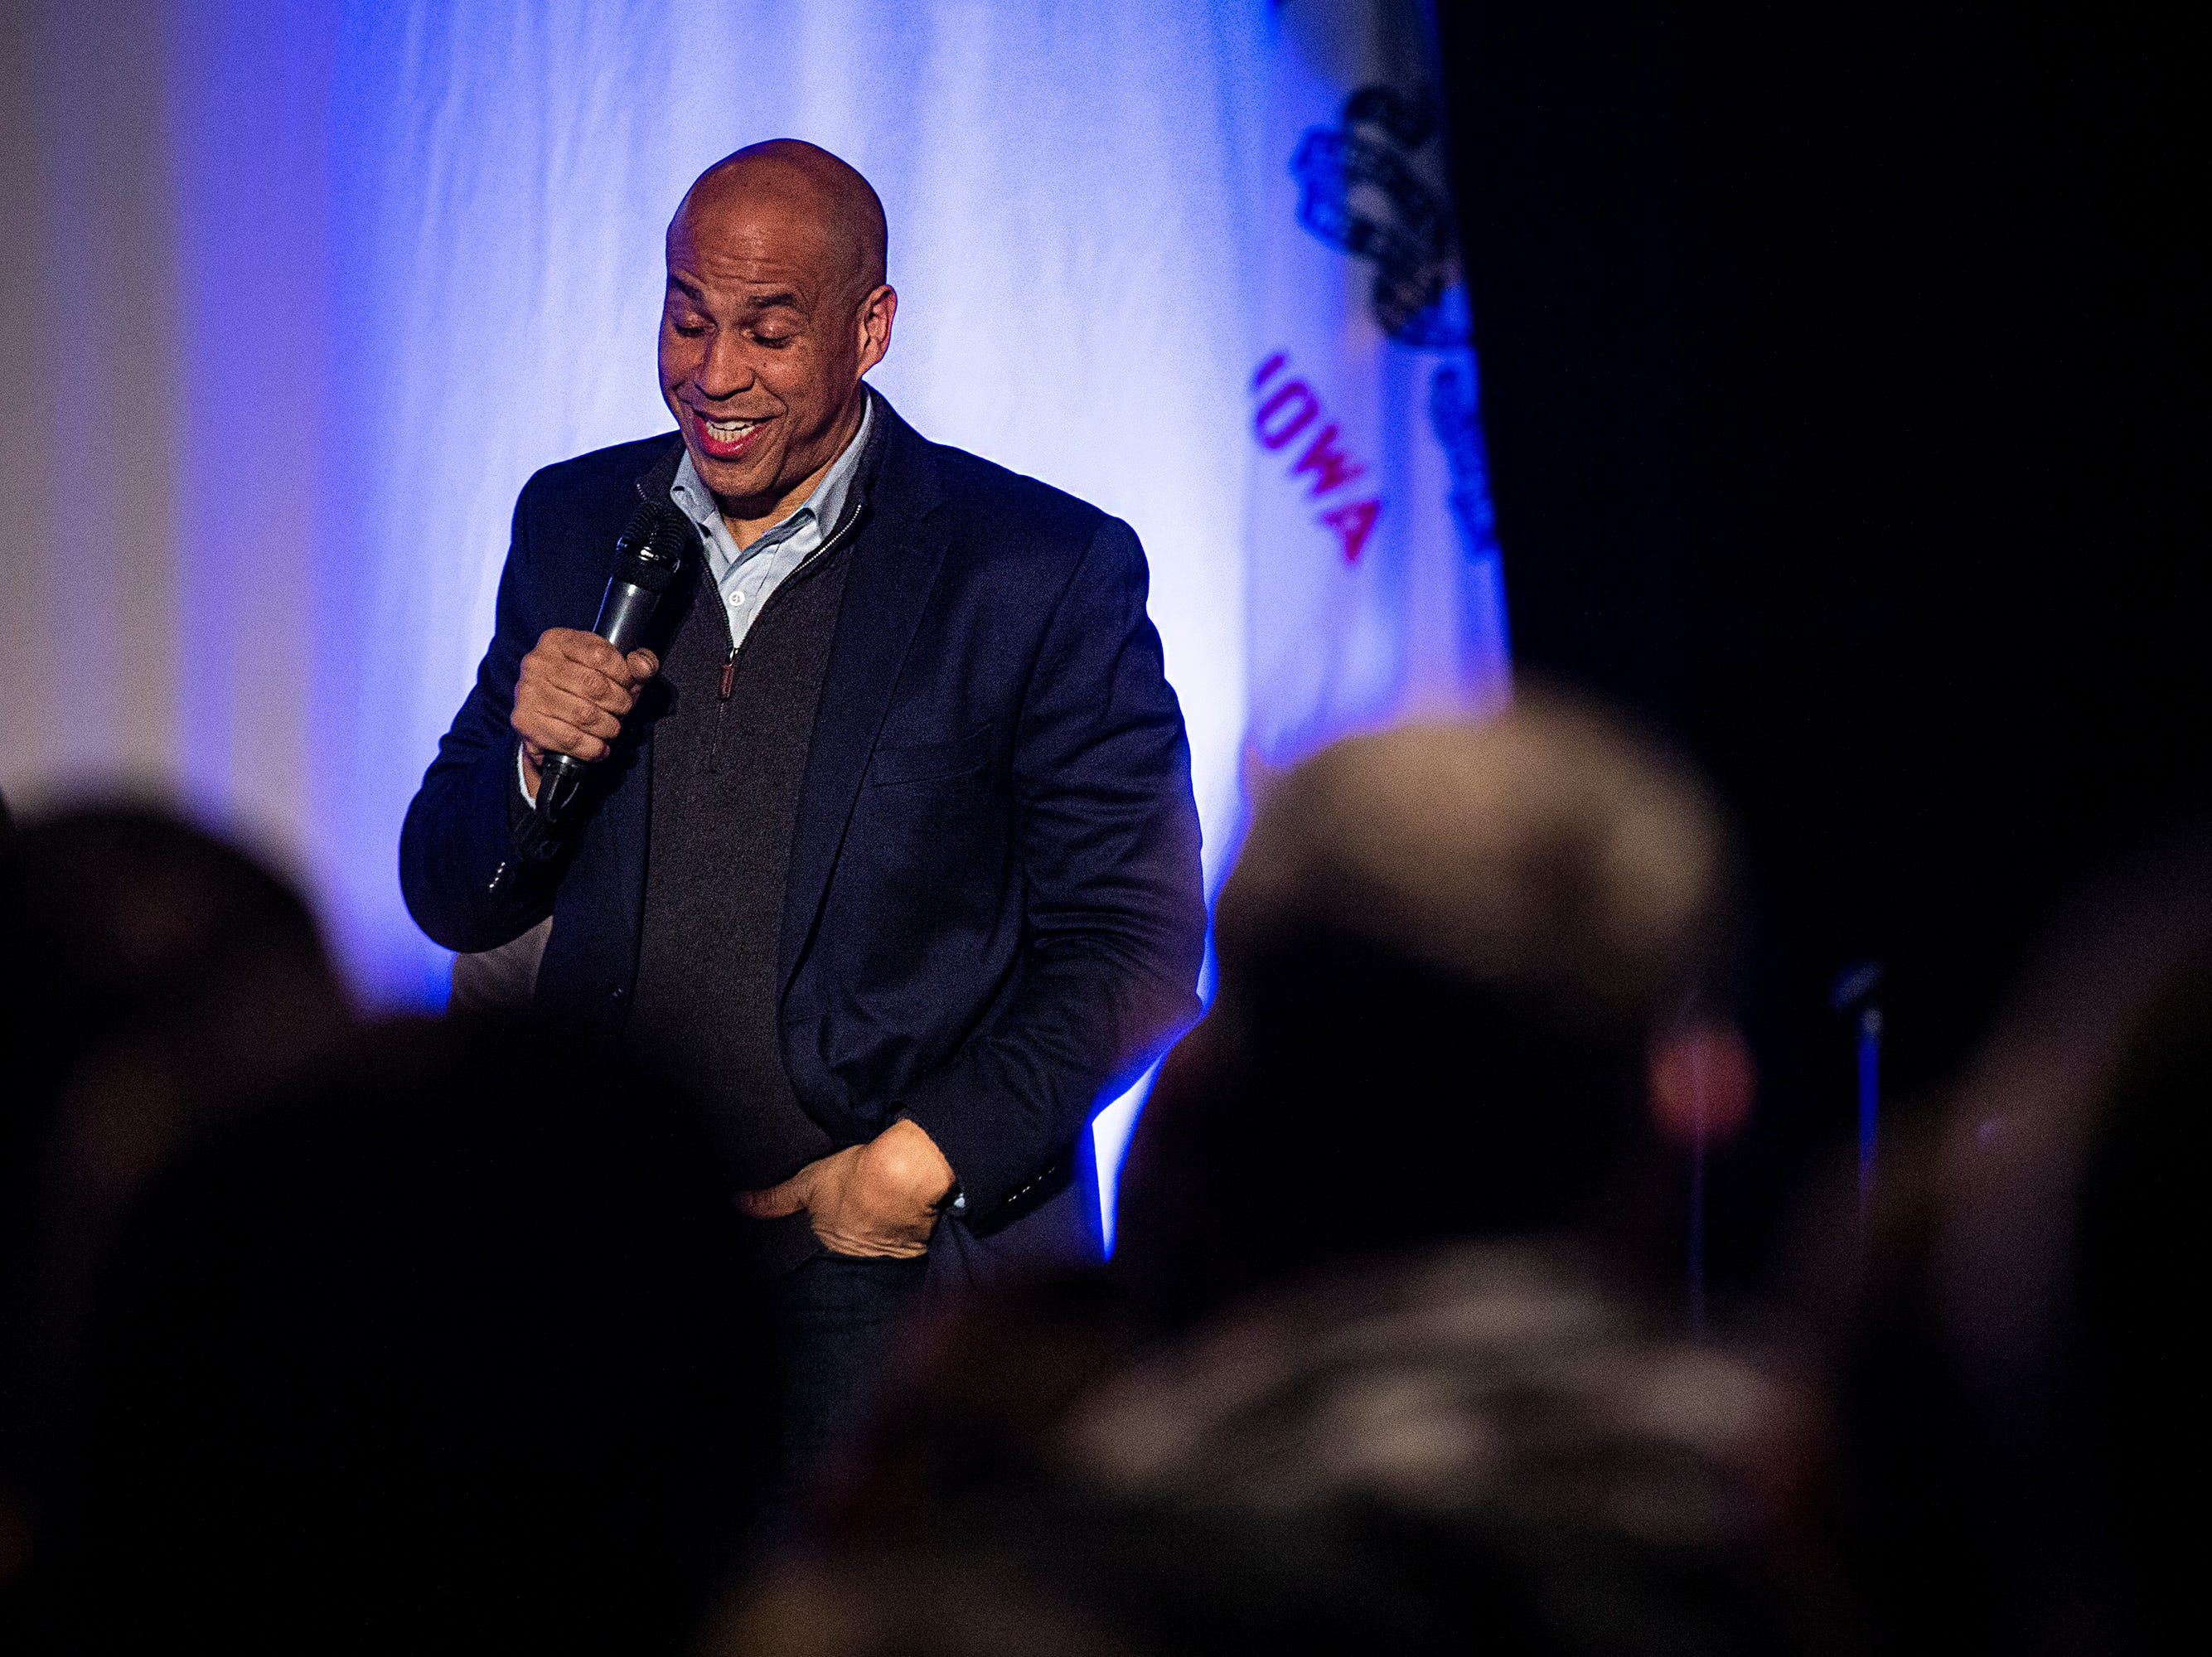 Sen. Cory Booker, D-N.J., speaks to a crowd of people gathered in the Kum & Go Theater on Saturday, Feb. 9, 2019, in downtown Des Moines. This is Bookers first swing through Iowa after announcing he's running for president.